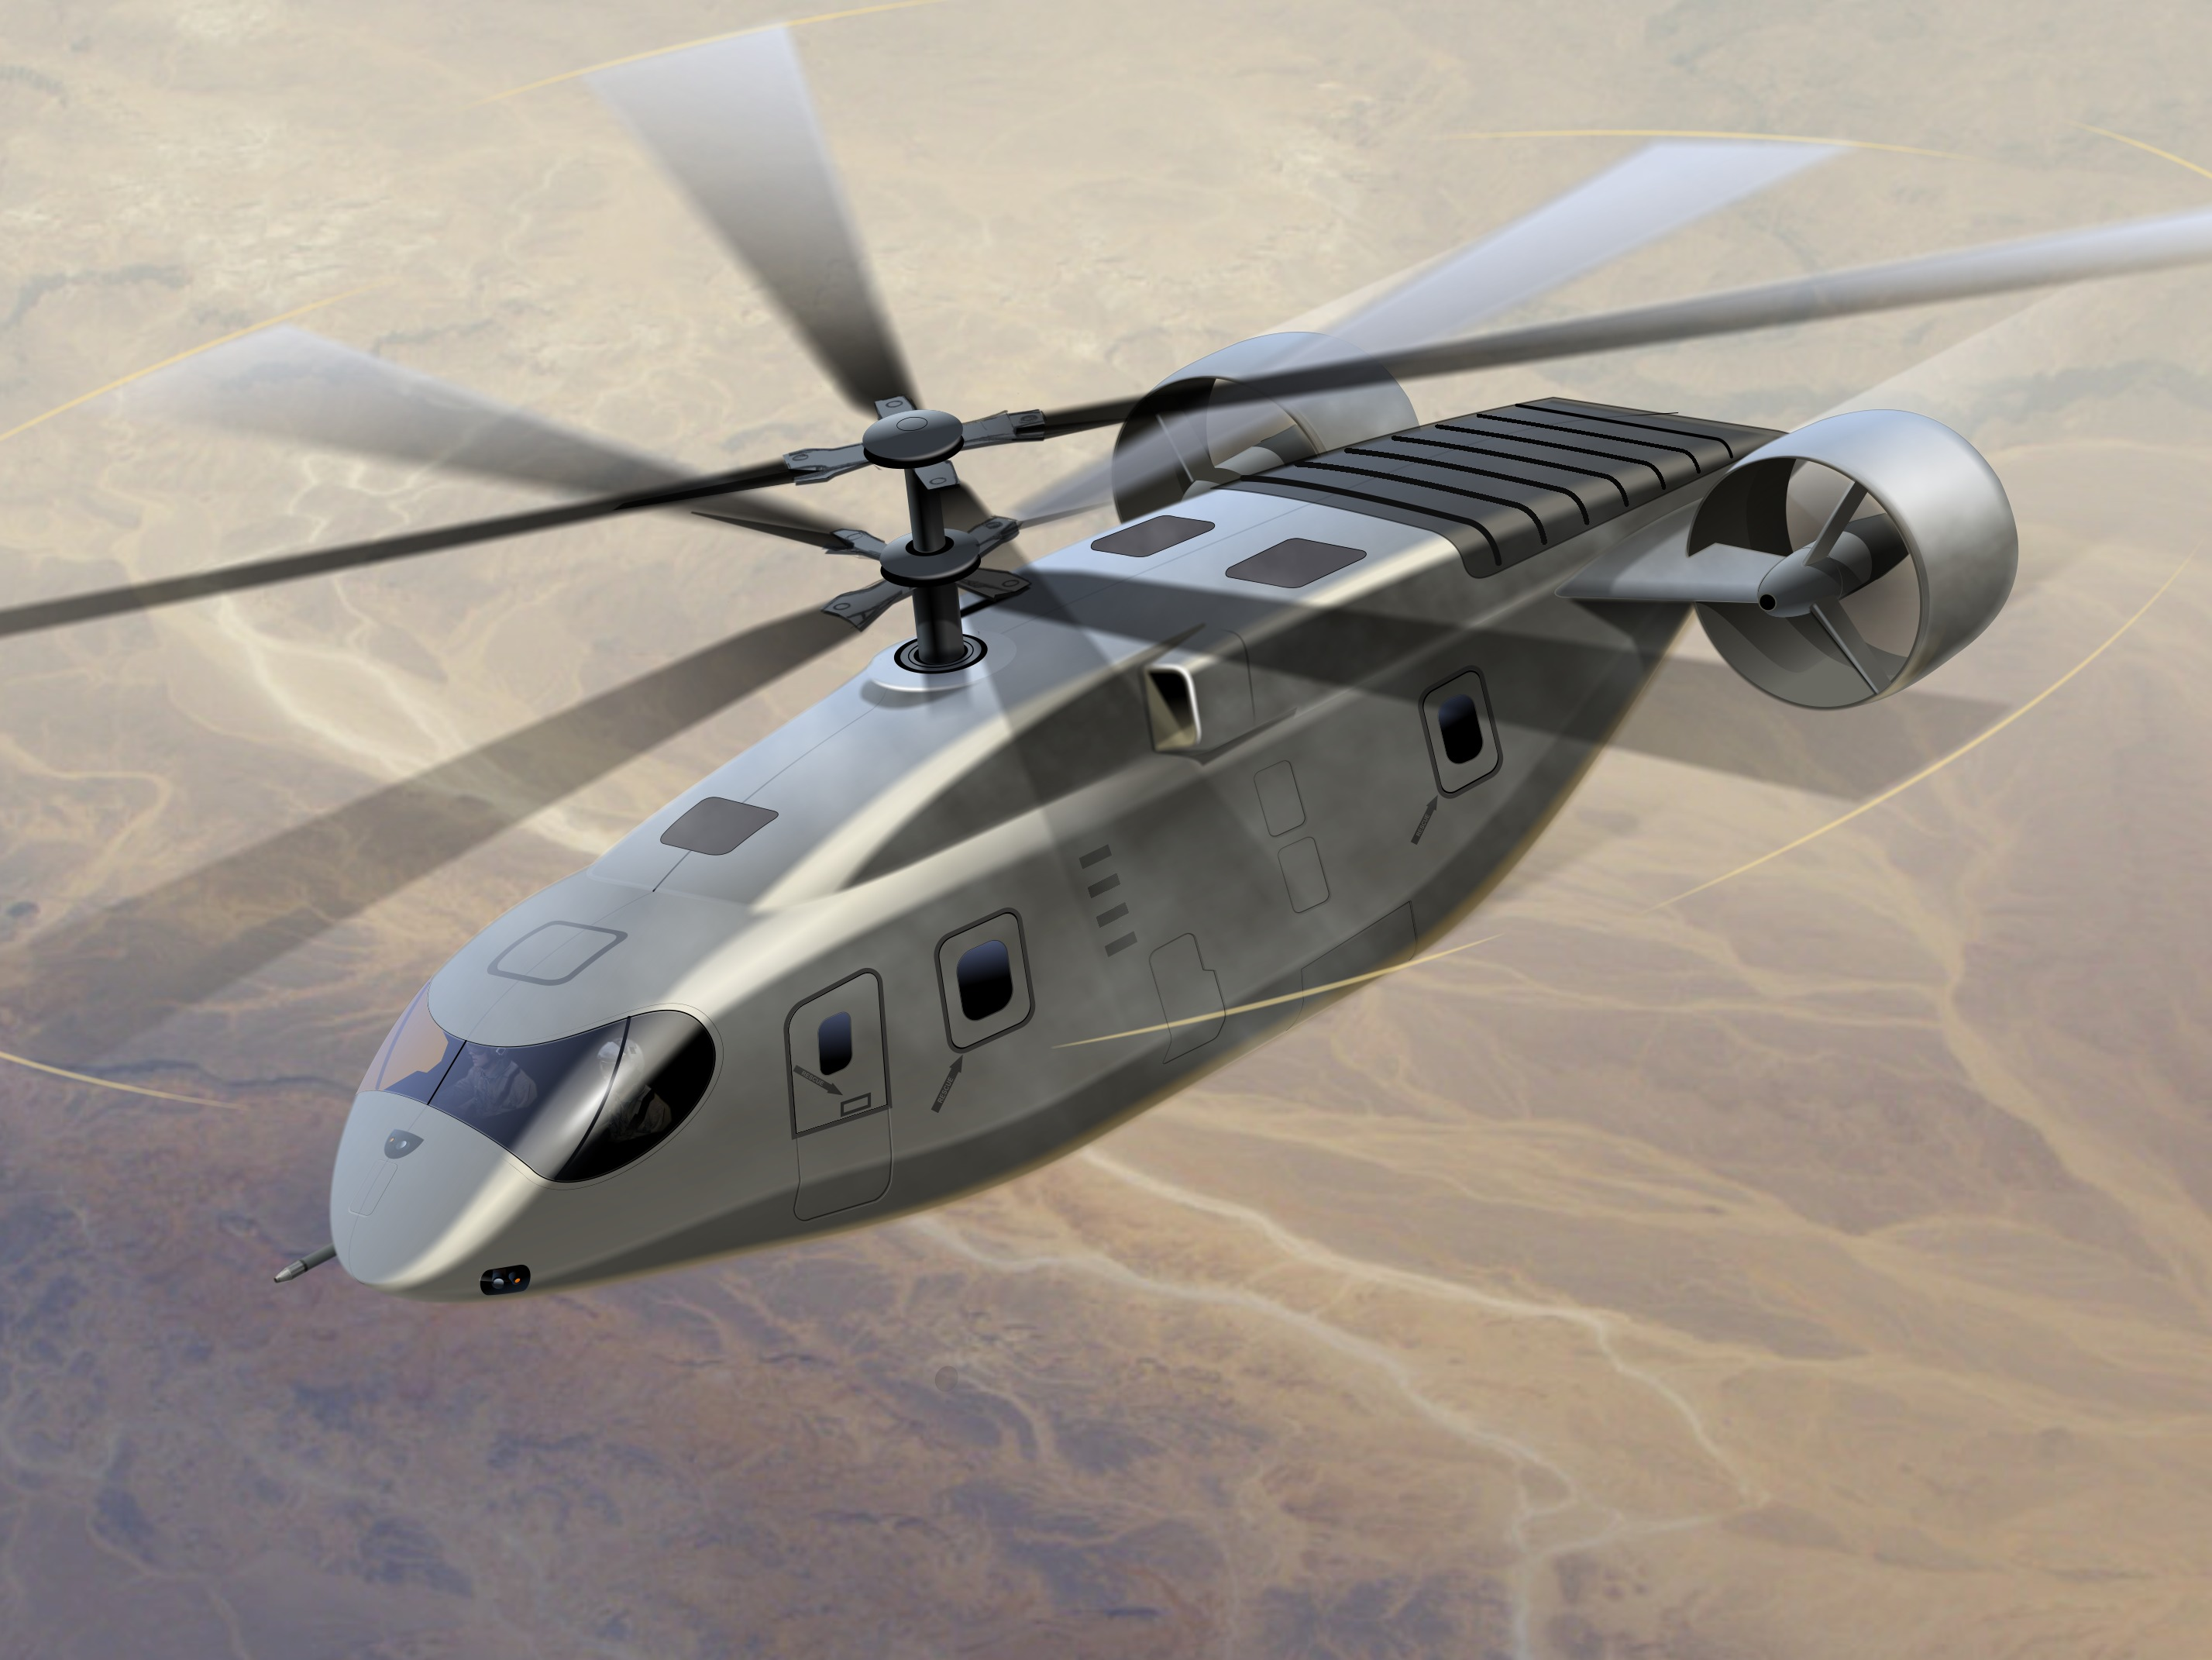 AVX Aircraft concept helicopter